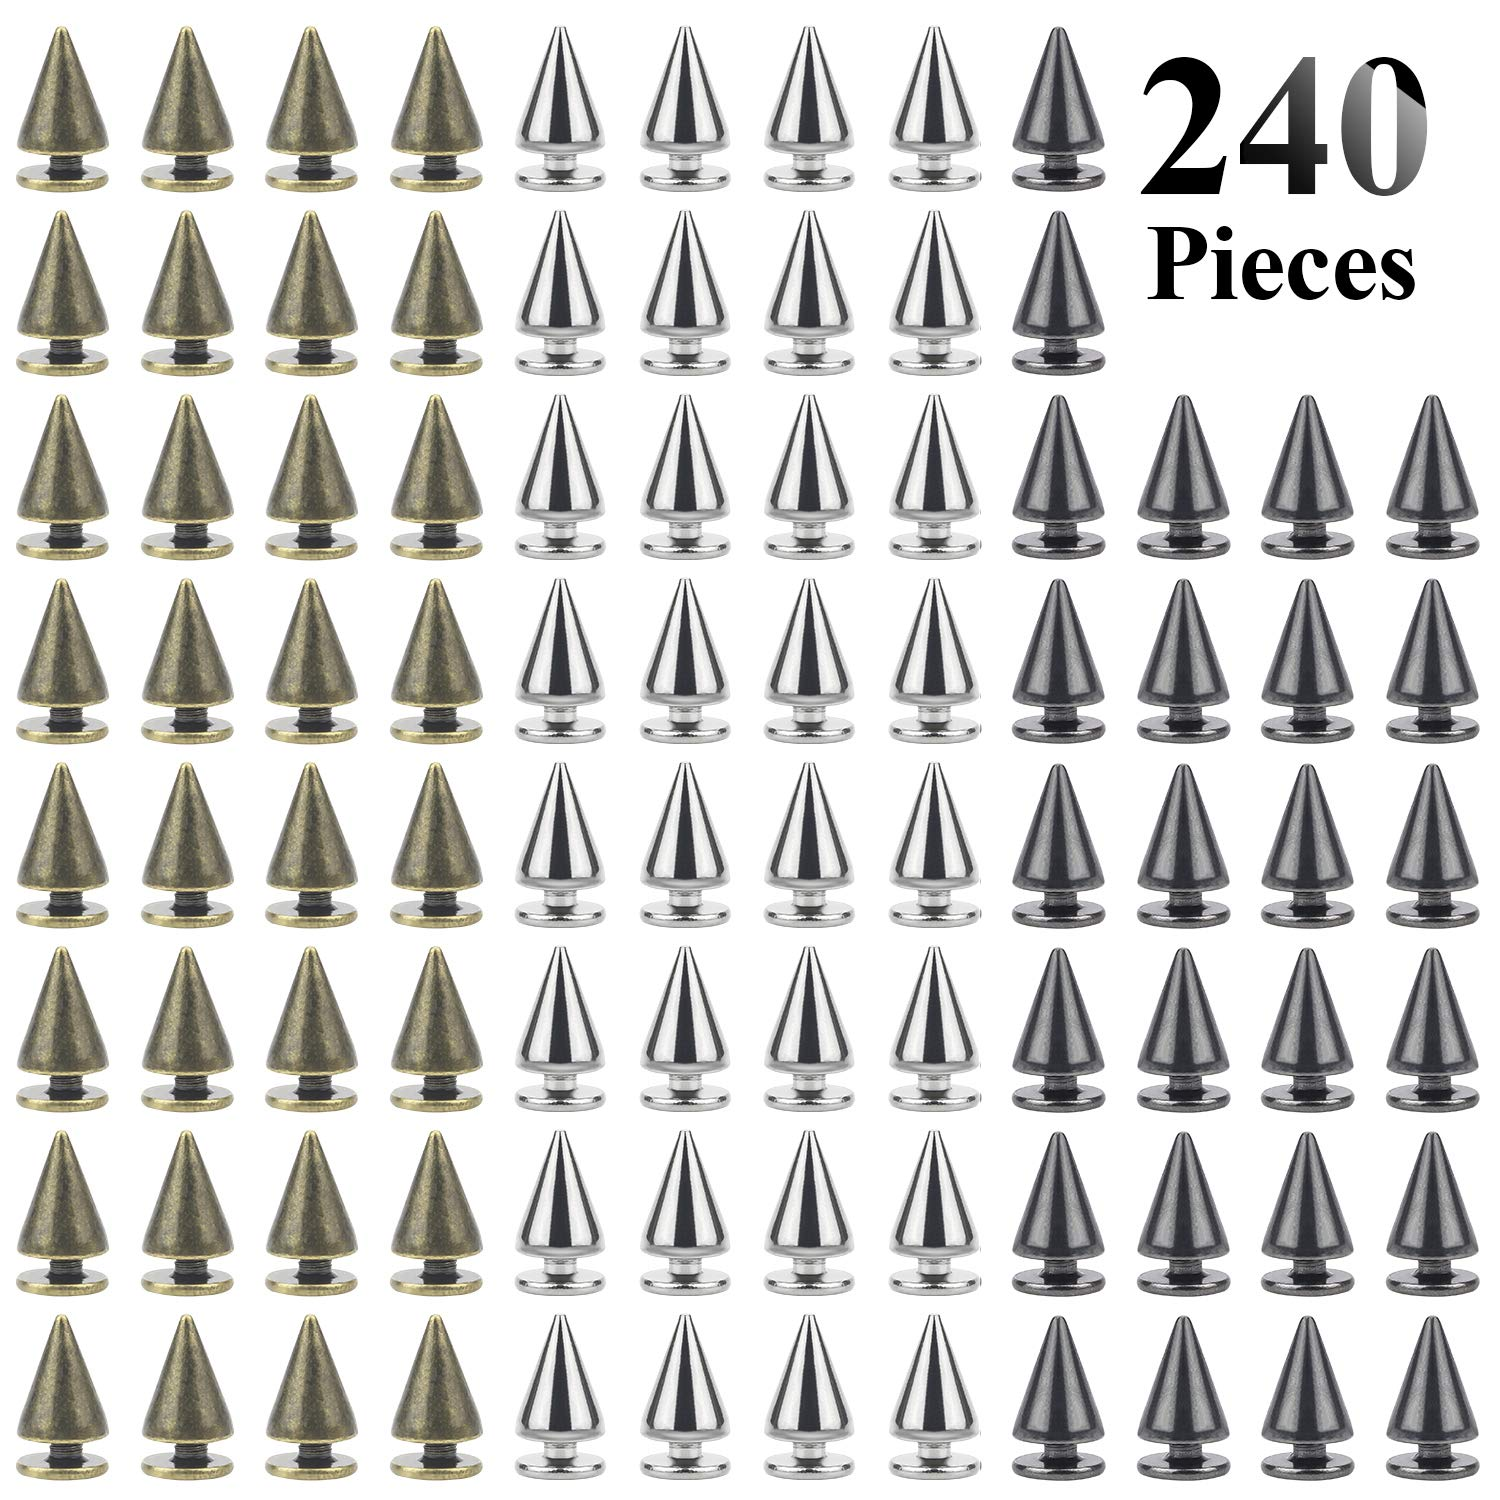 Favordrory 7mmx10mm Bullet Cone Spike and Stud Metal Screw Back for DIY Leather Crafts, 240 PCS (Silver, Black, Bronze)